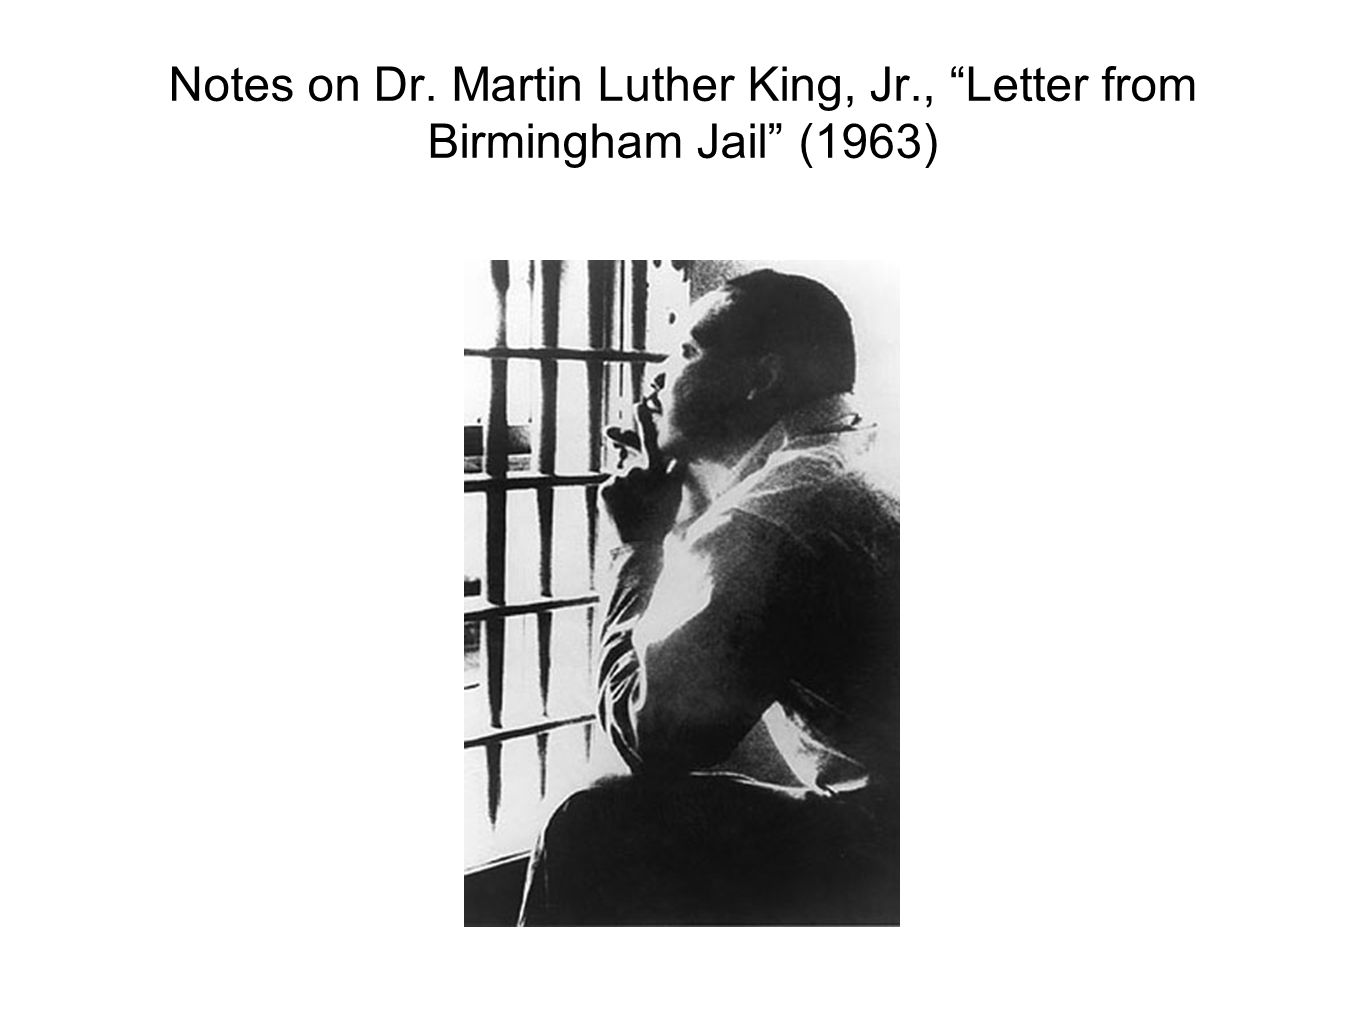 Notes on Dr. Martin Luther King, Jr